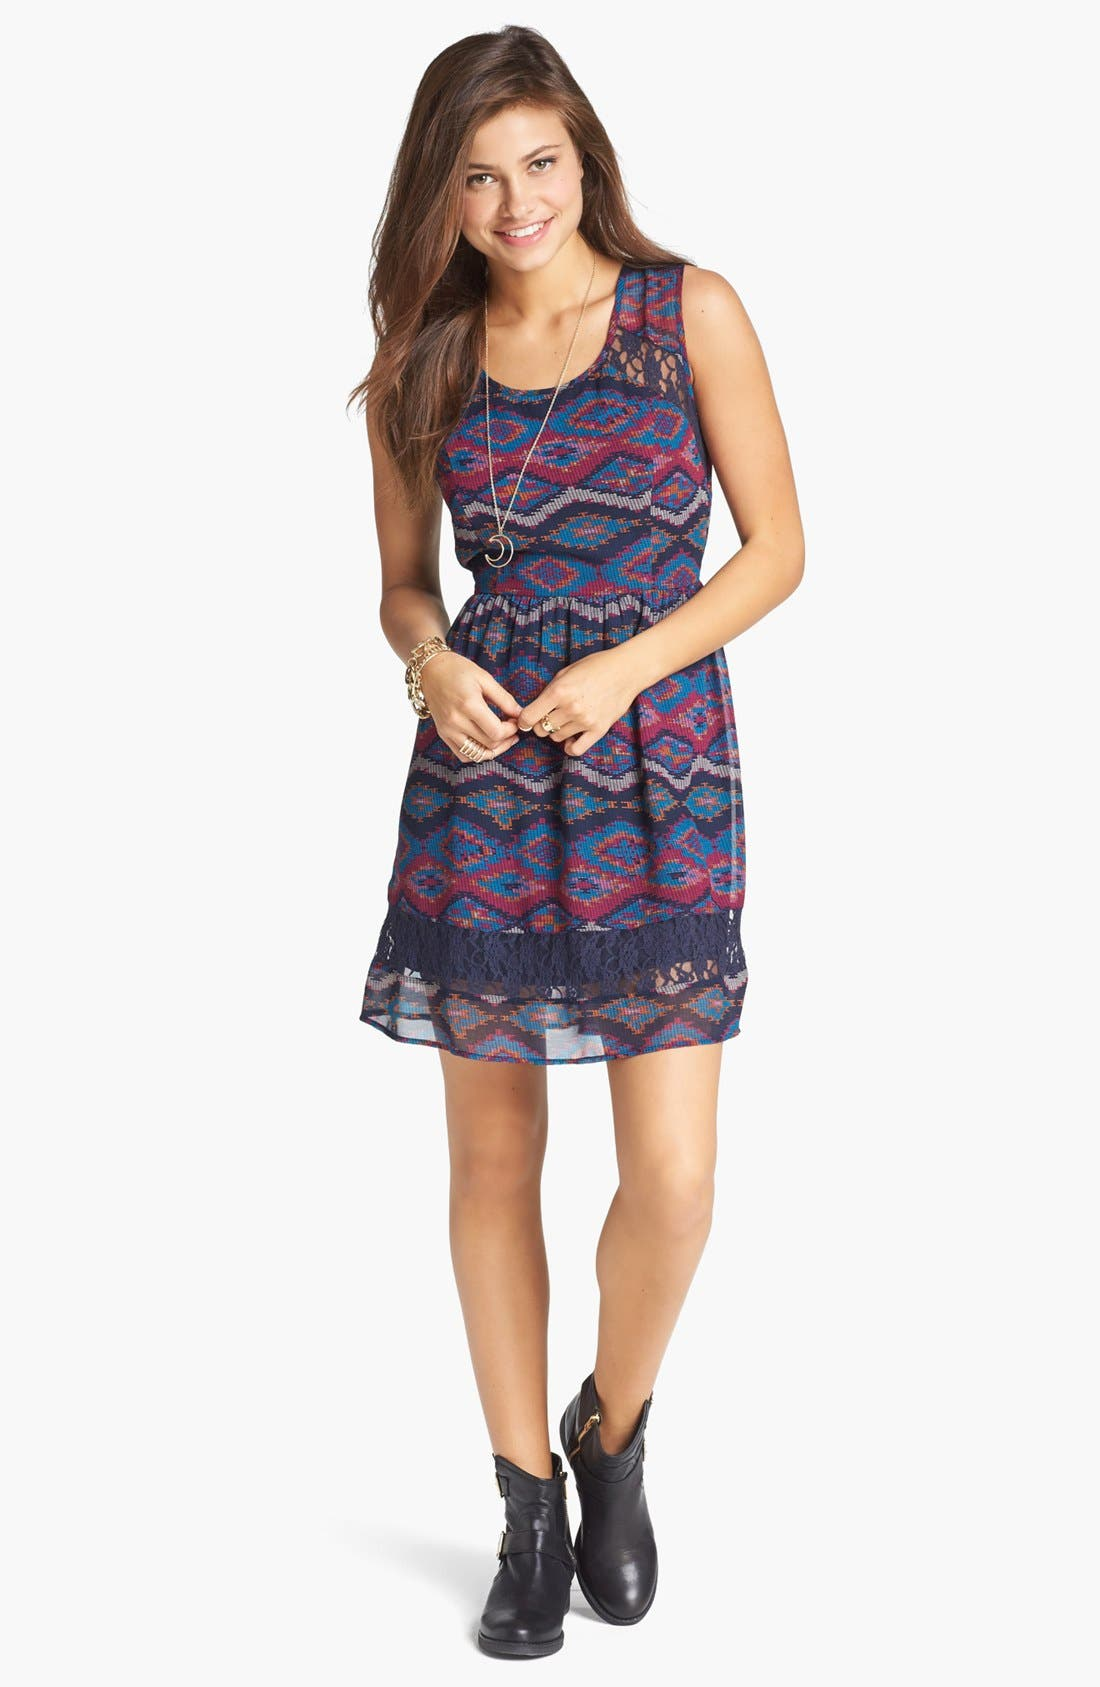 Main Image - Band of Gypsies Lace Inset Print Fit & Flare Dress (Juniors)